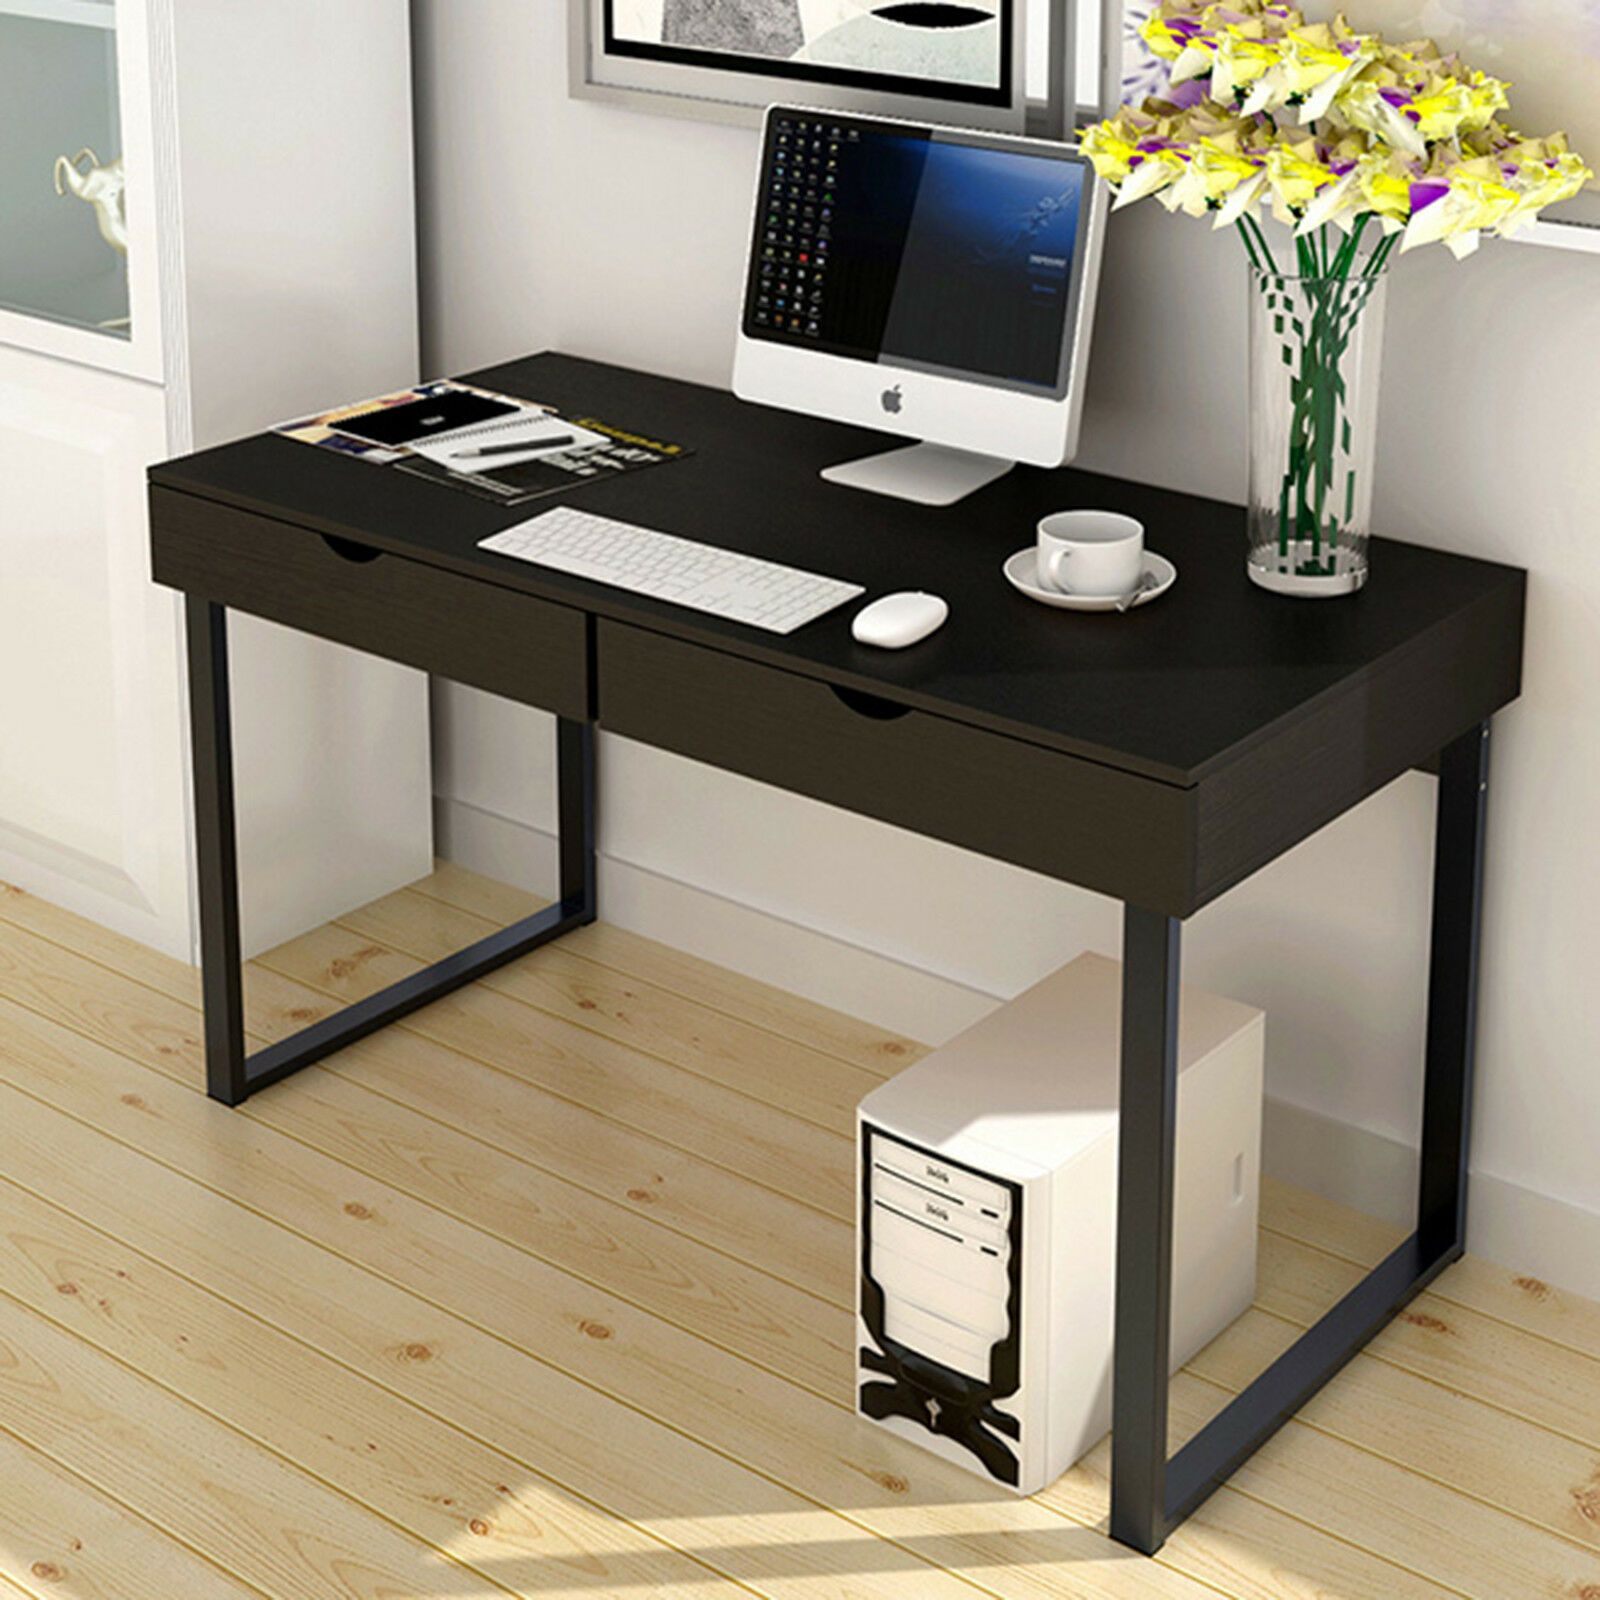 Black Computer Desk Study Table Pc Laptop Workstation Home Office Furniture Wood Workstation Office Ideas Of Workstation Office Workstationo Ikea Feng Shui